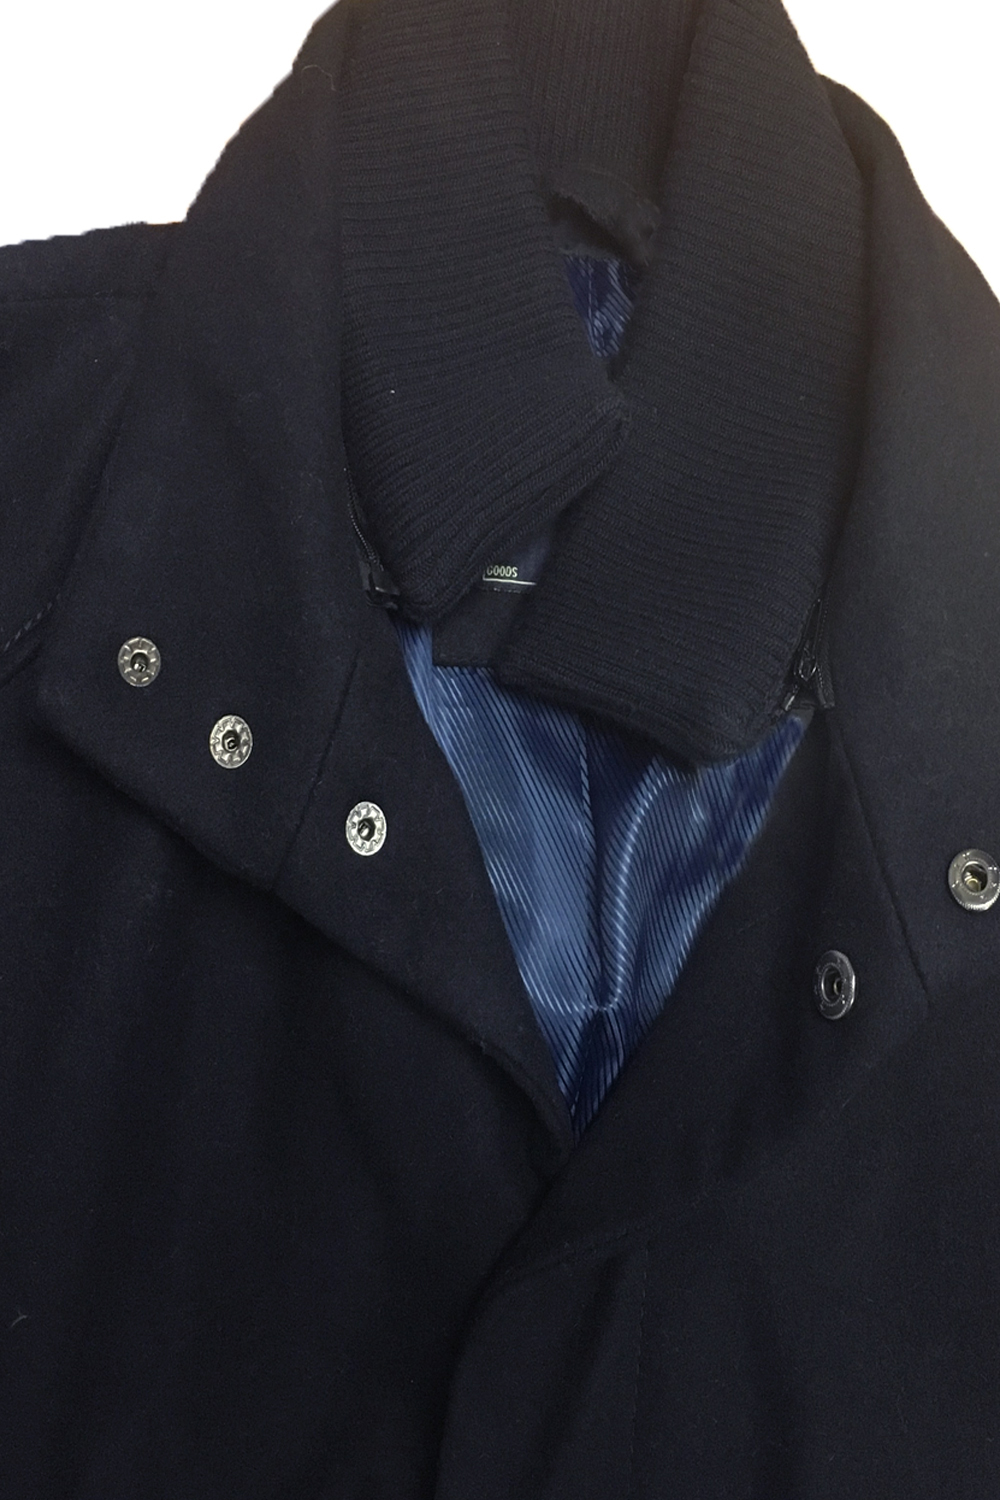 Tokyo-Laundry-Mens-Ackroyd-Smart-Wool-Coat-Funnel-Neck-Zip-Up-Collared-Jacket thumbnail 5